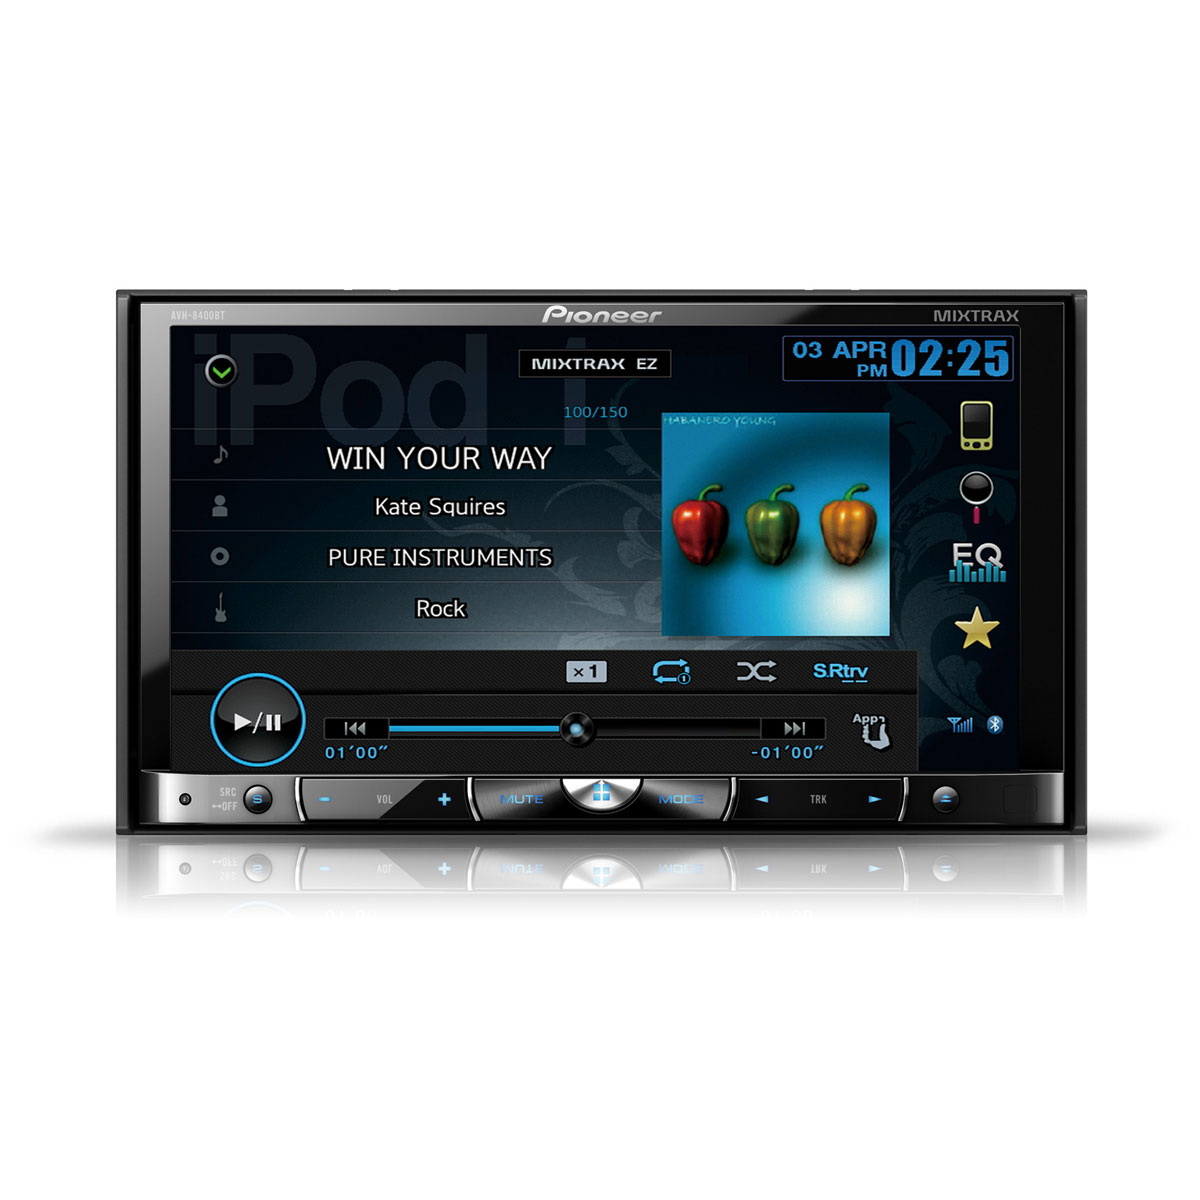 pioneer avh 8400bt delco remy alternator diagram avh-8400bt - autoradio sur ldlc.com